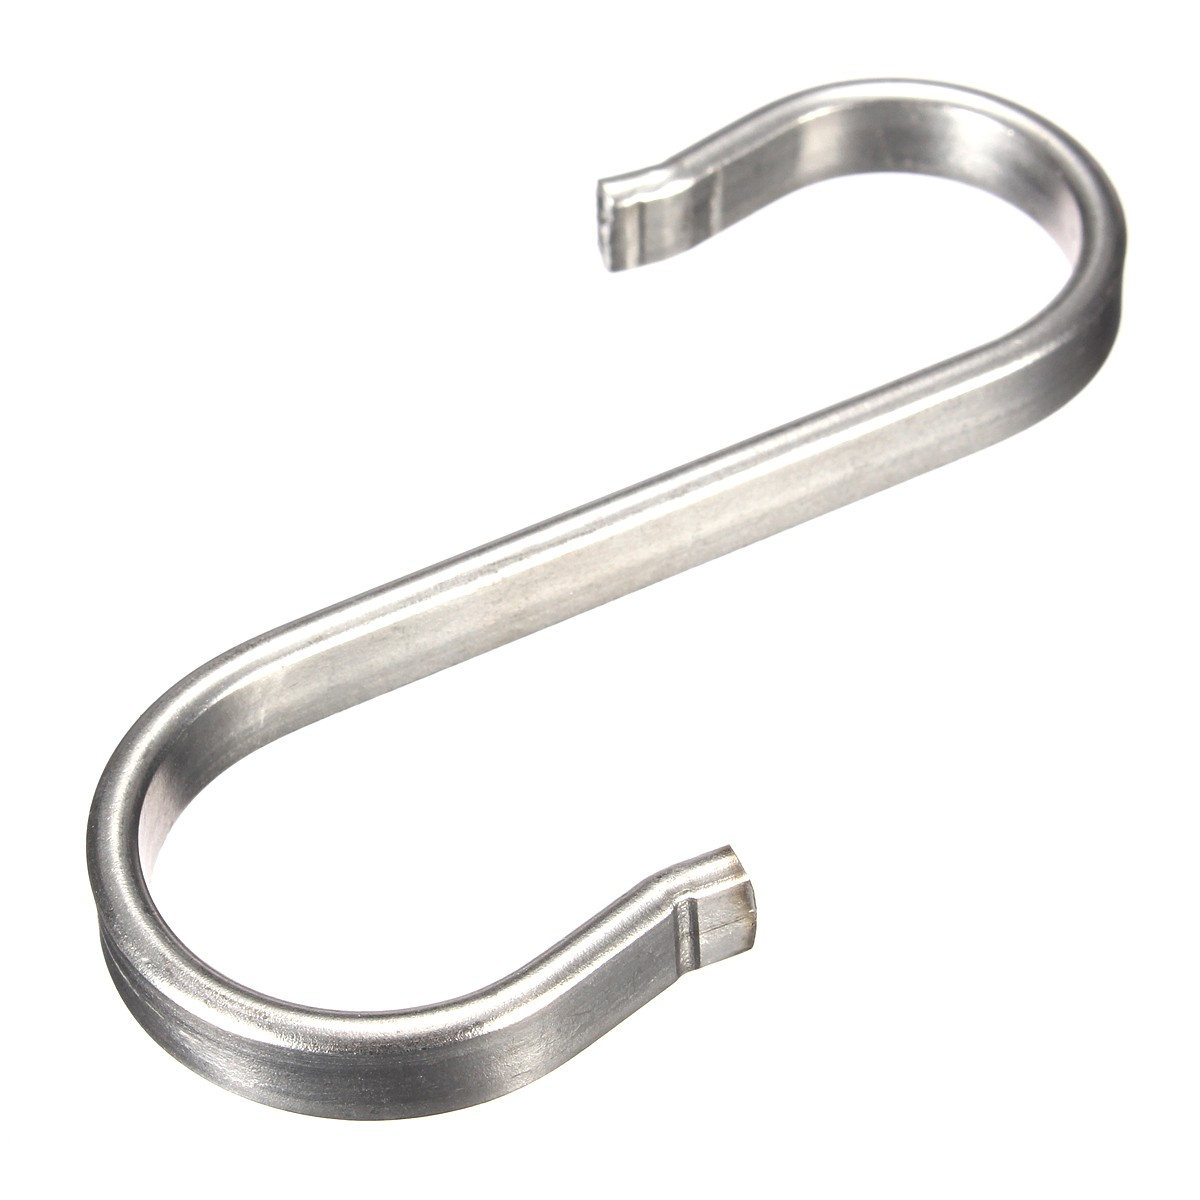 Home kitchen s shape hooks stainless steel hanger clasp for Kitchen s hooks for pots and pans